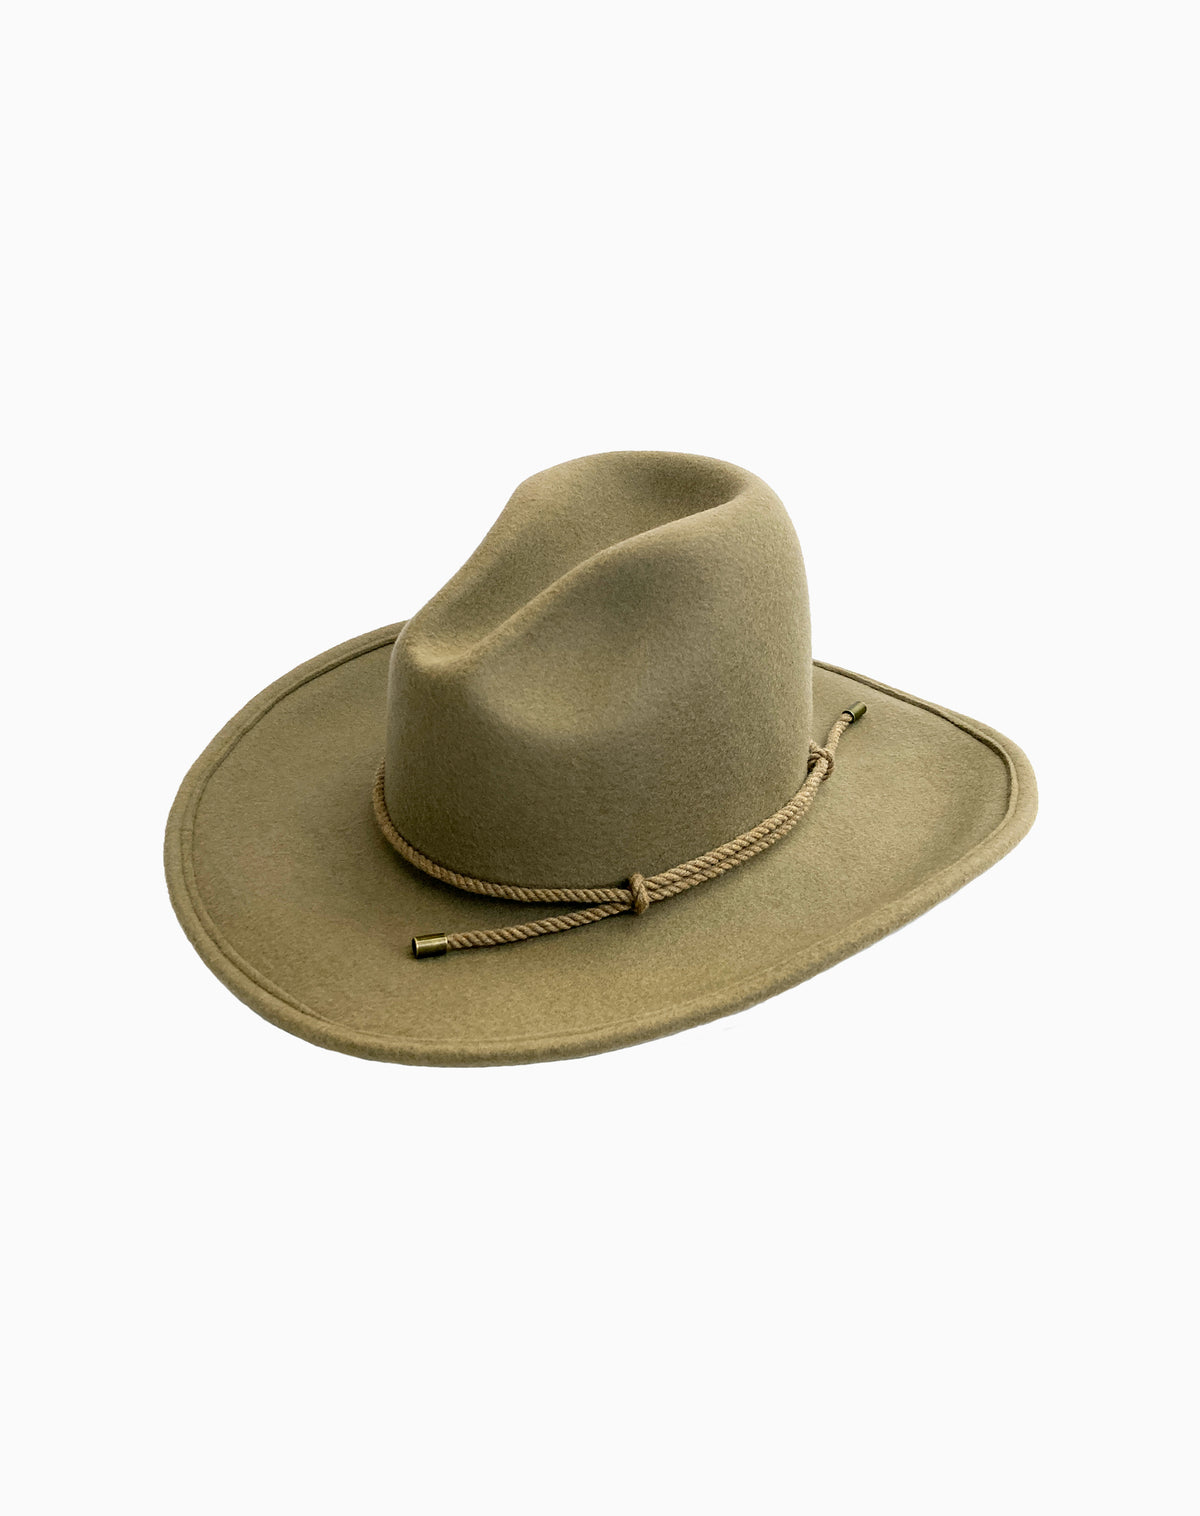 Ketchum Wool Felt Hat in Putty